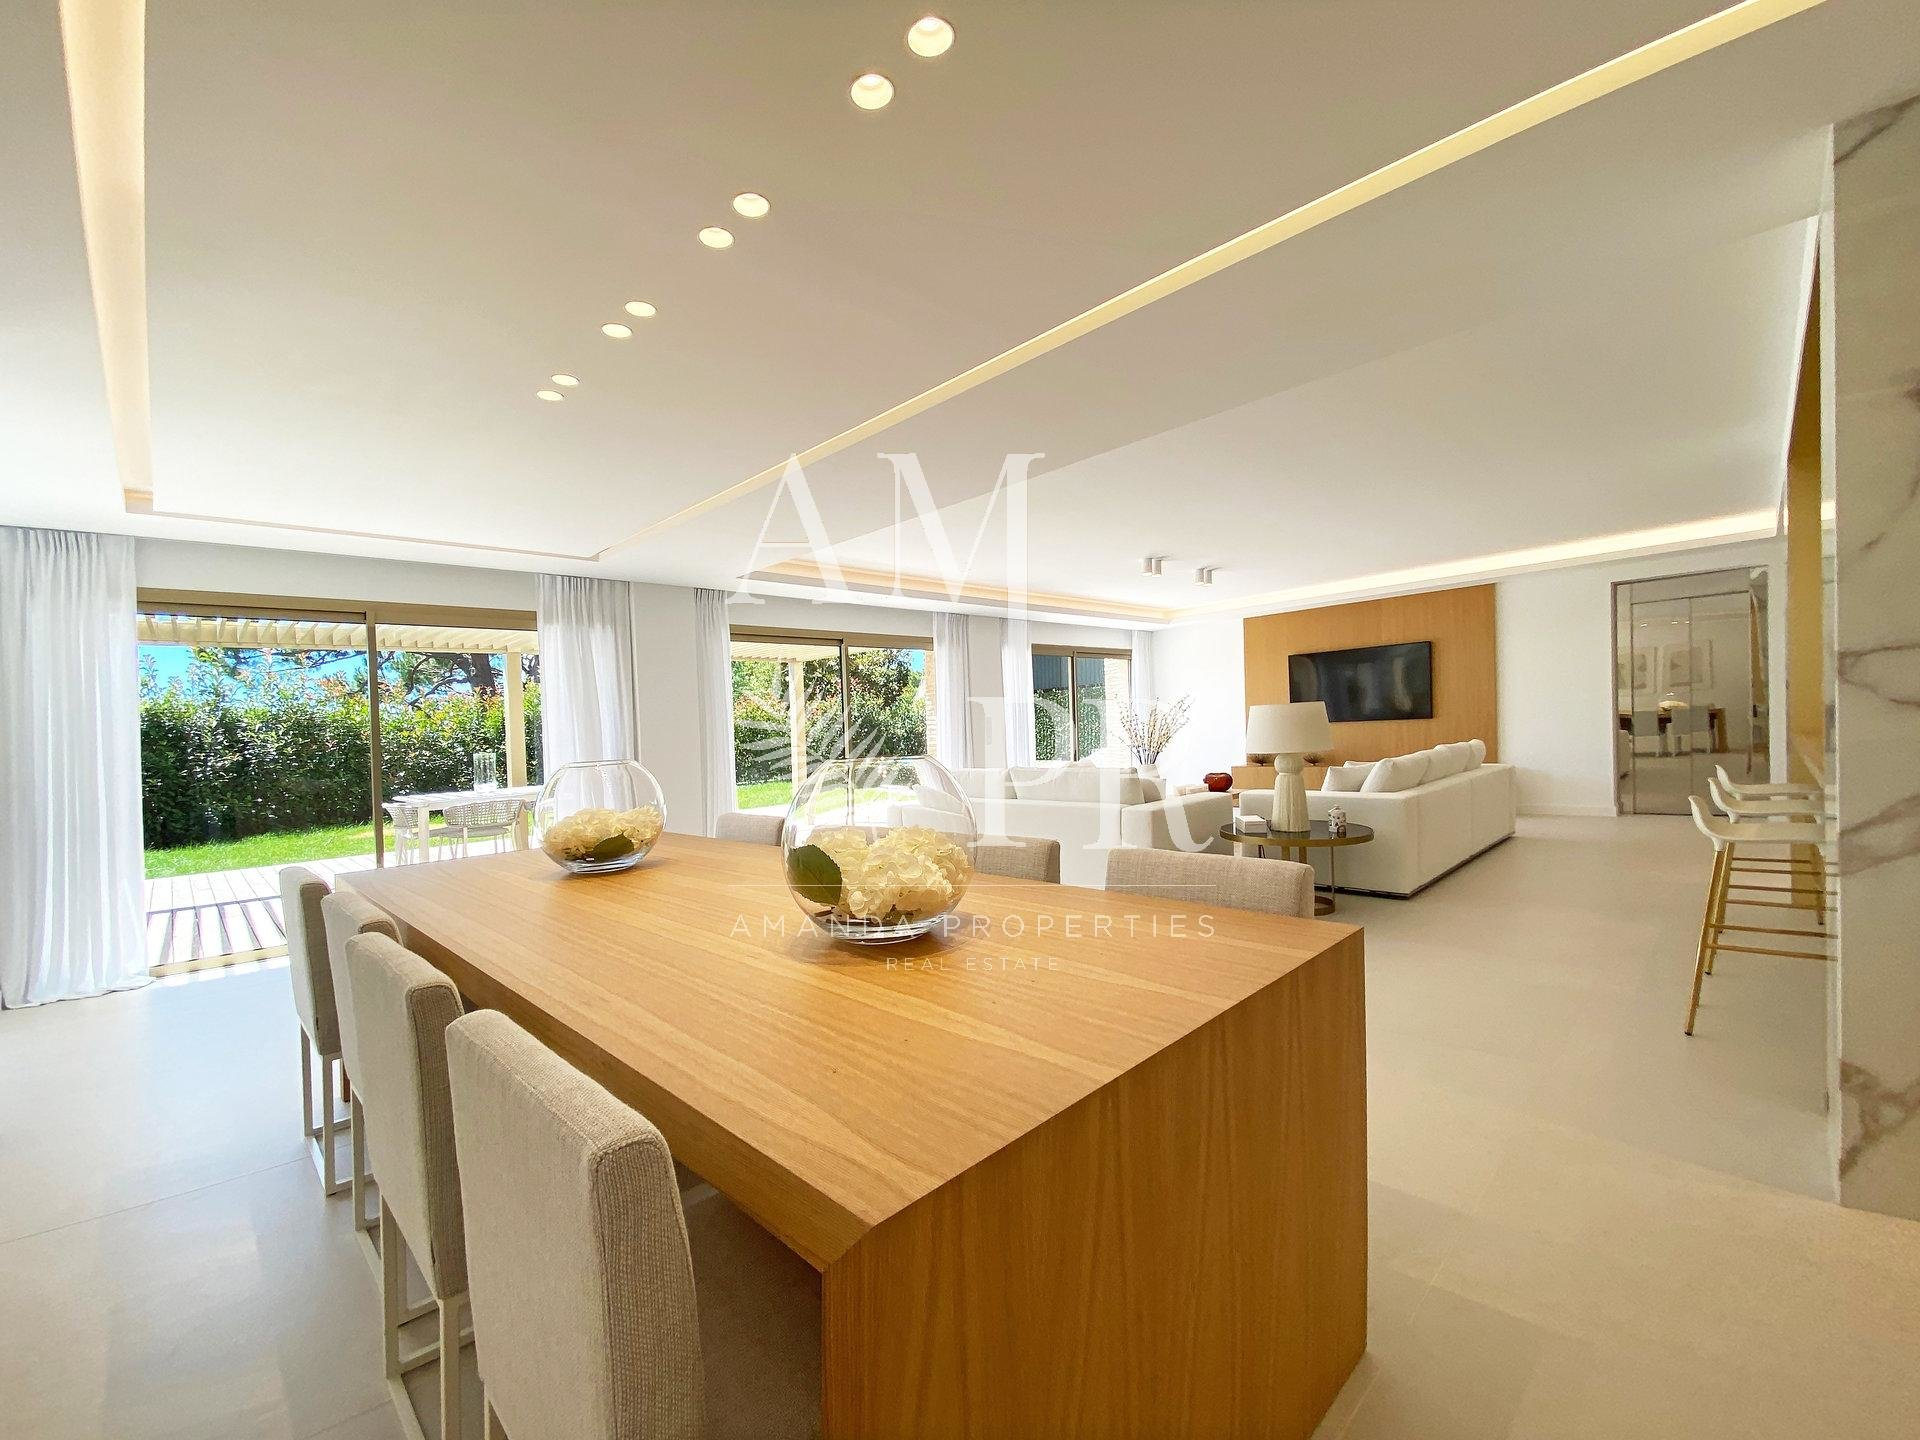 Oustanding apartment of 320m2 at the heart of Cannes Californie